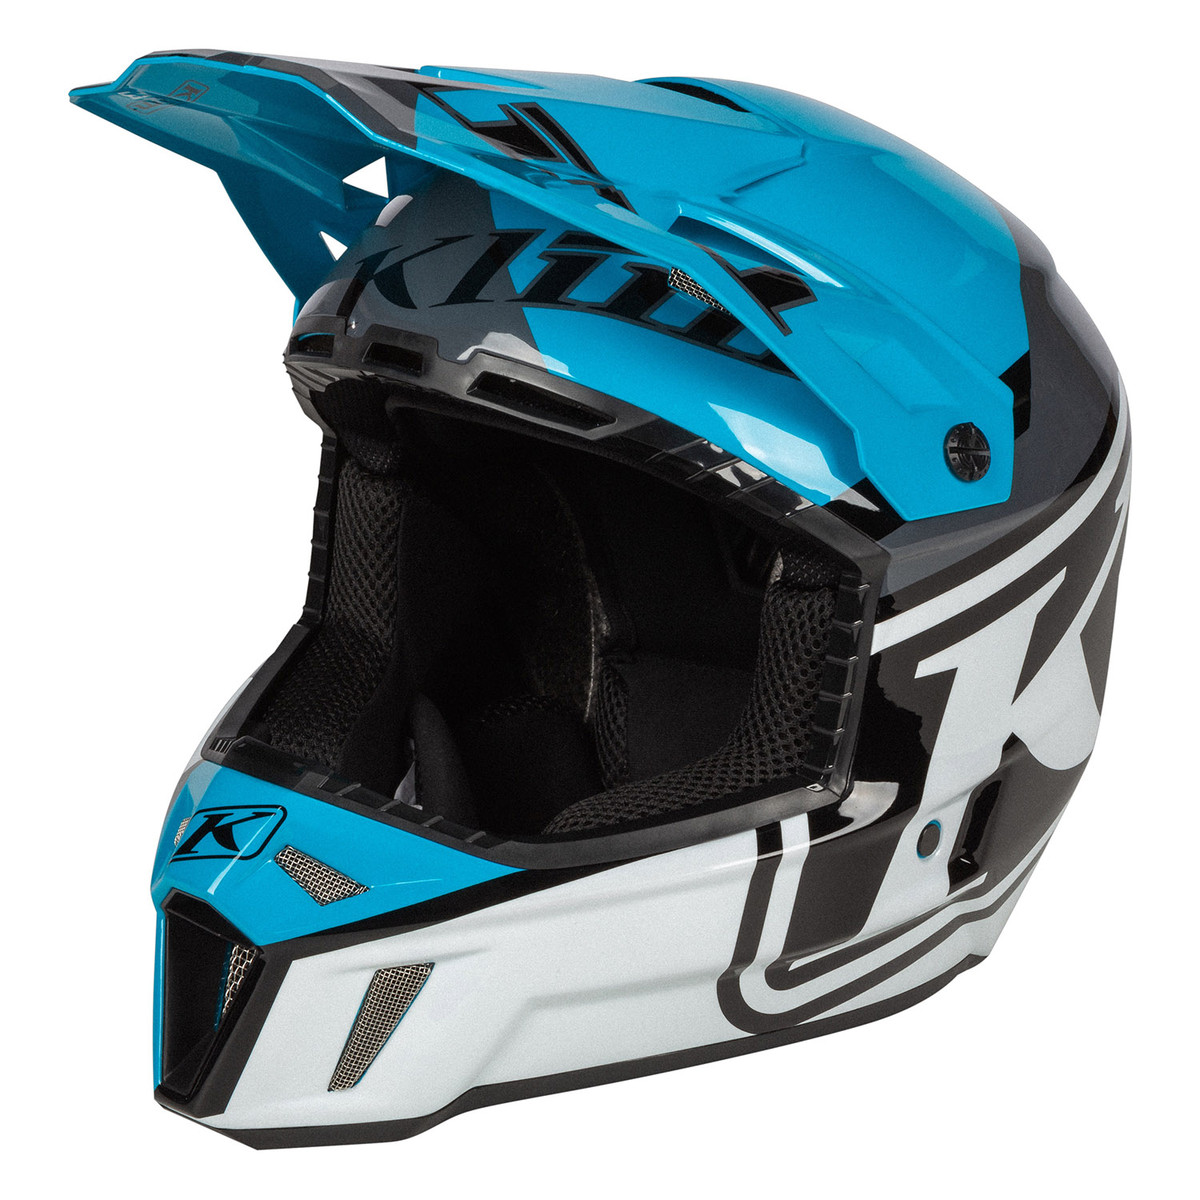 DISARRAY VIVID BLUE F3 Helmet